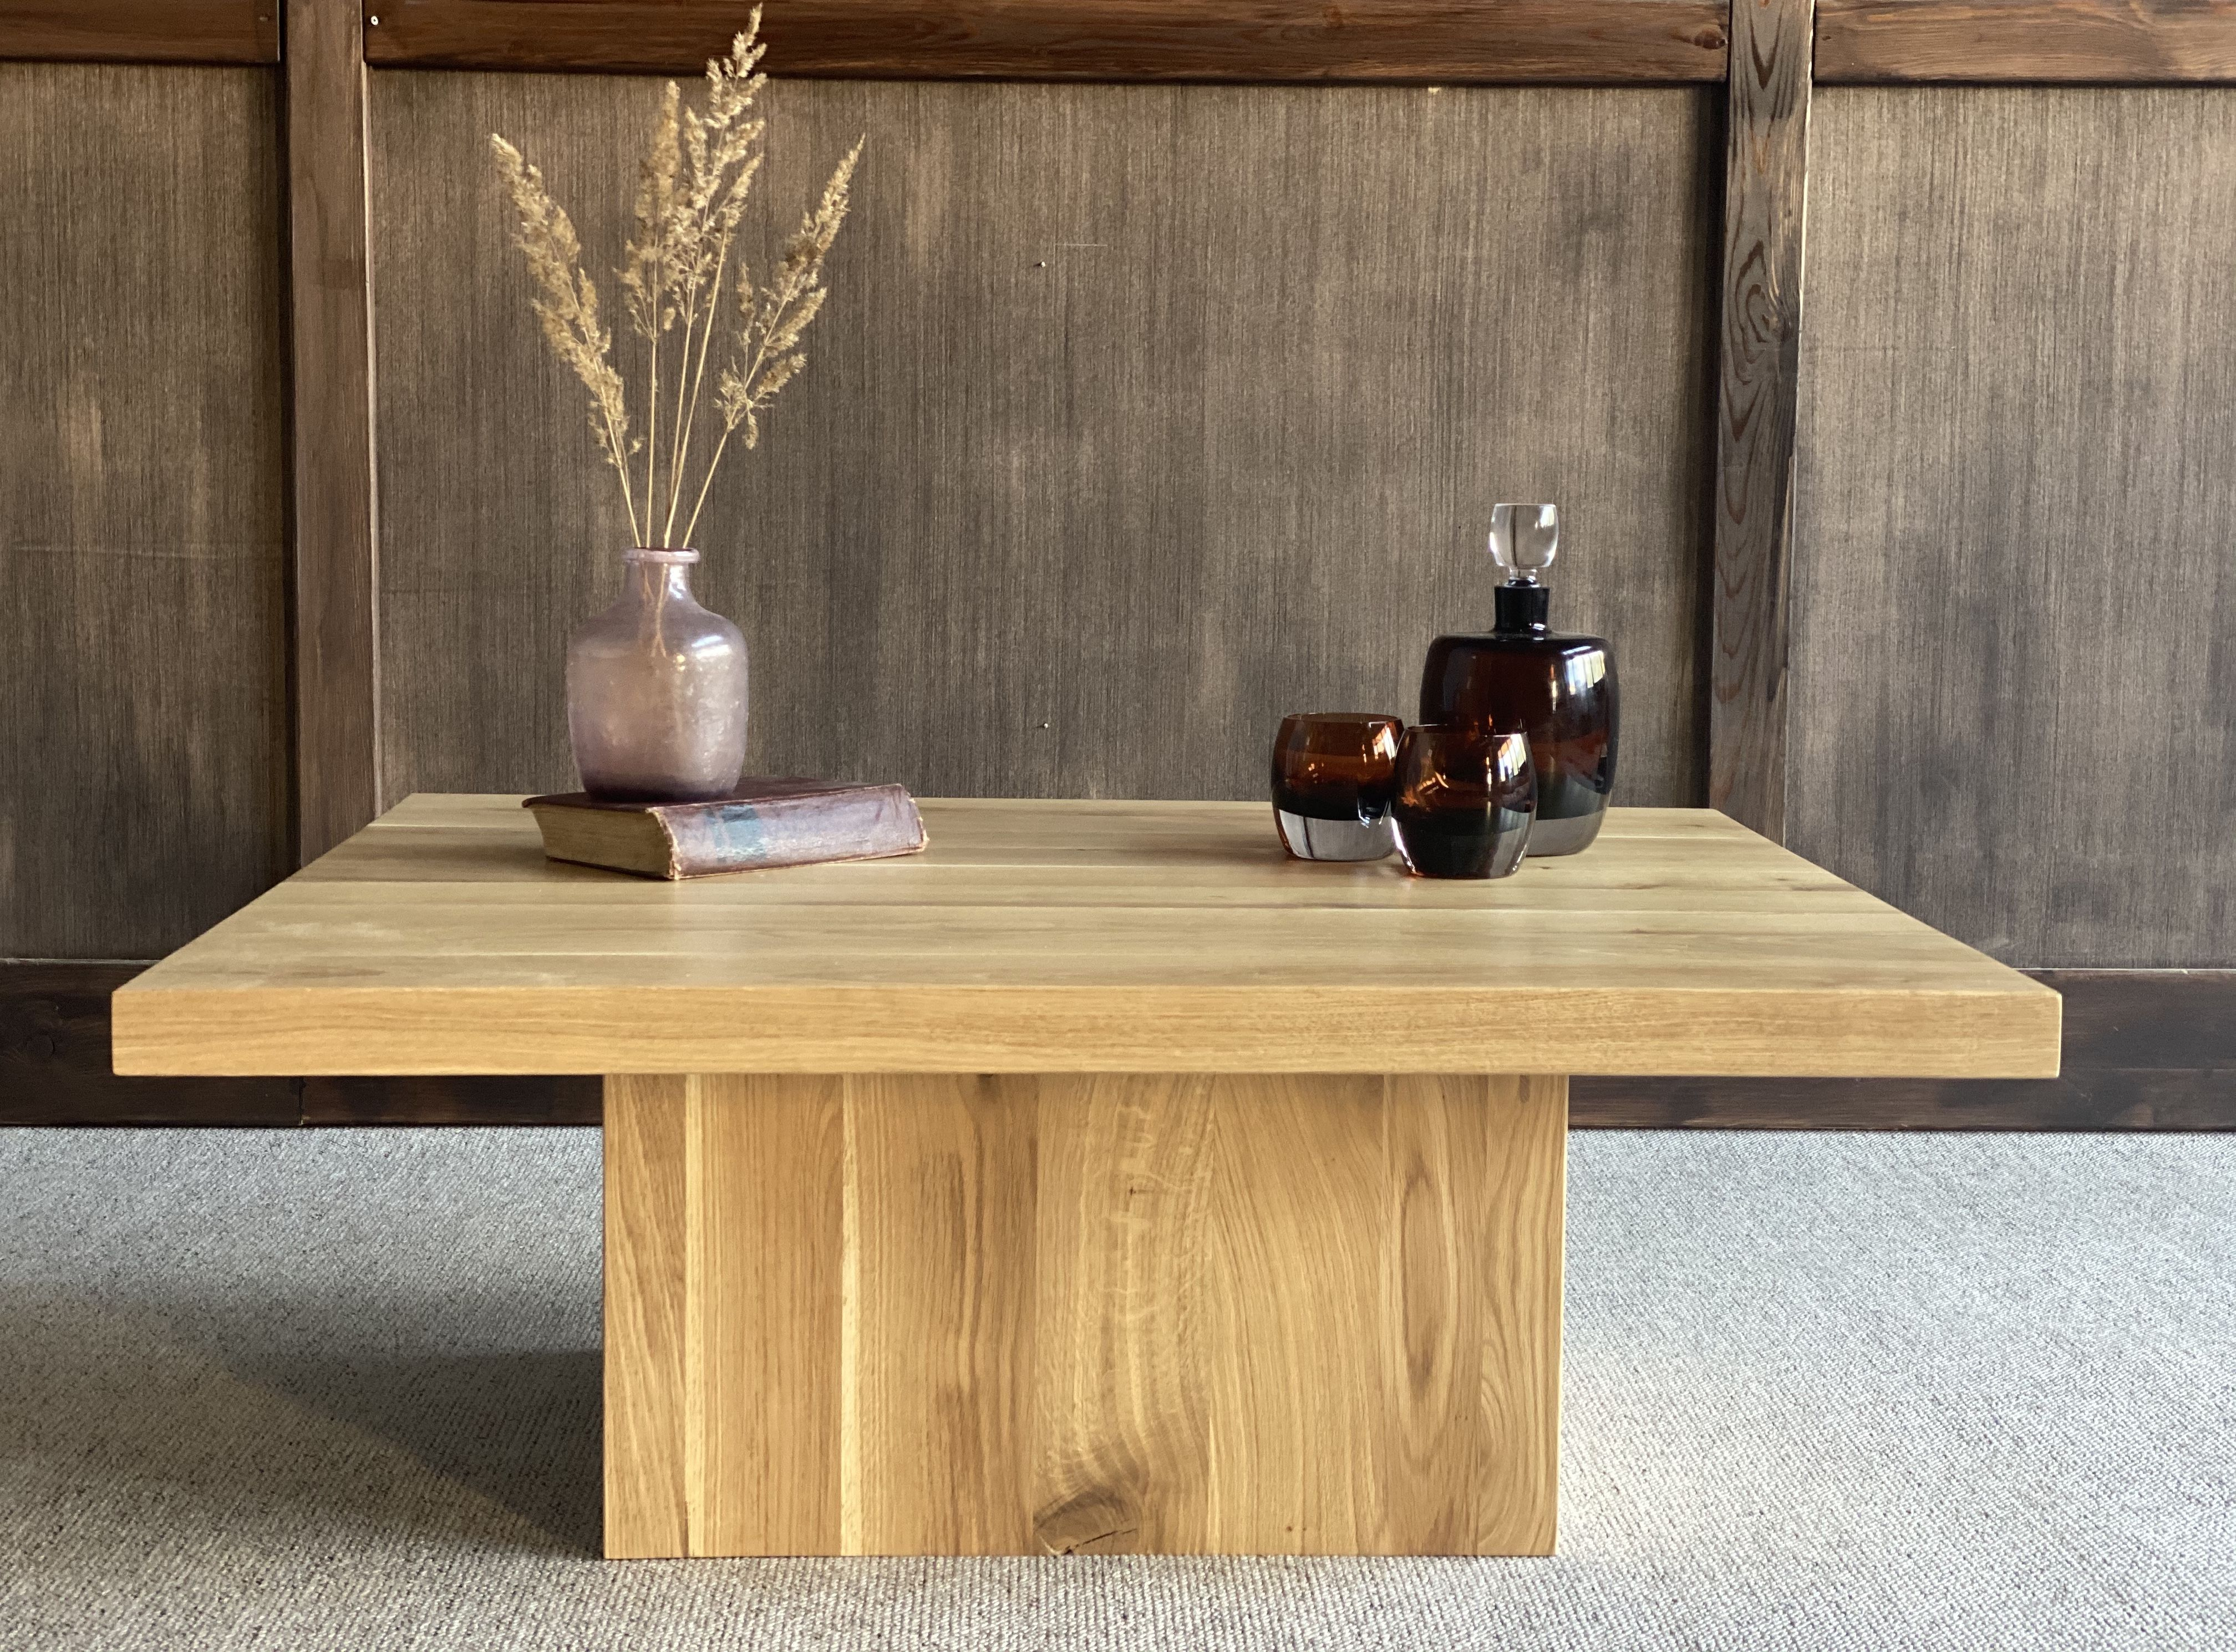 Square Coffee Table Rustic Style Coffee Table Rustic Oak Coffee Table Coffee Table Square Living room table handmade